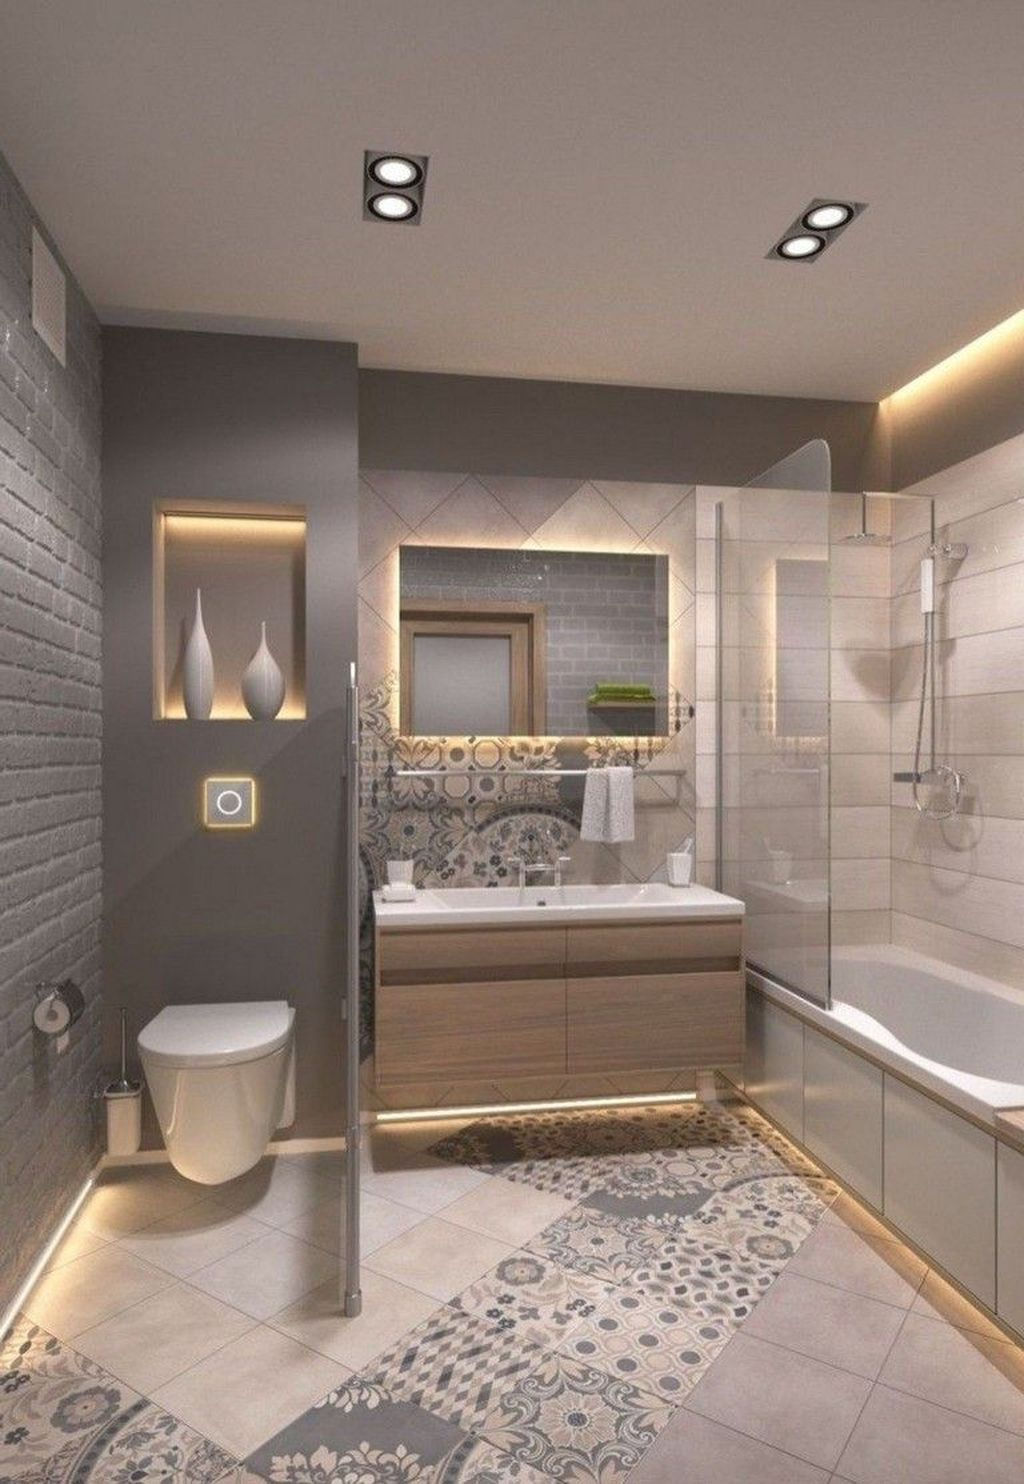 Awesome Small Bathroom Remodel Ideas On A Budget 18